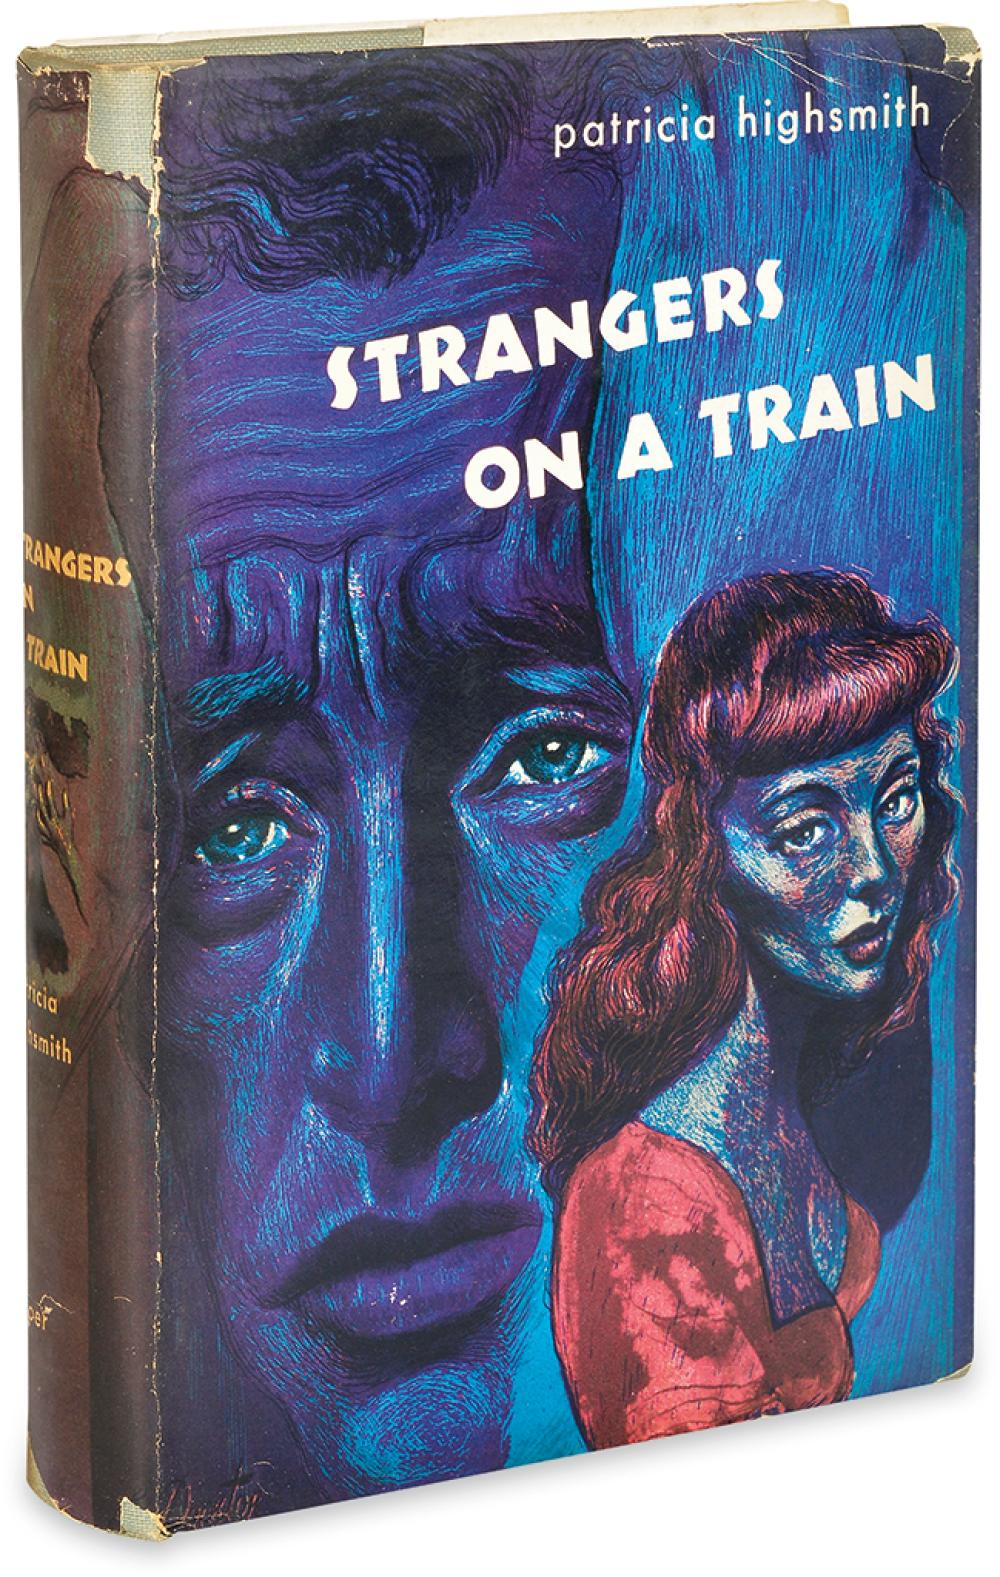 HIGHSMITH, PATRICIA. Strangers On A Train.